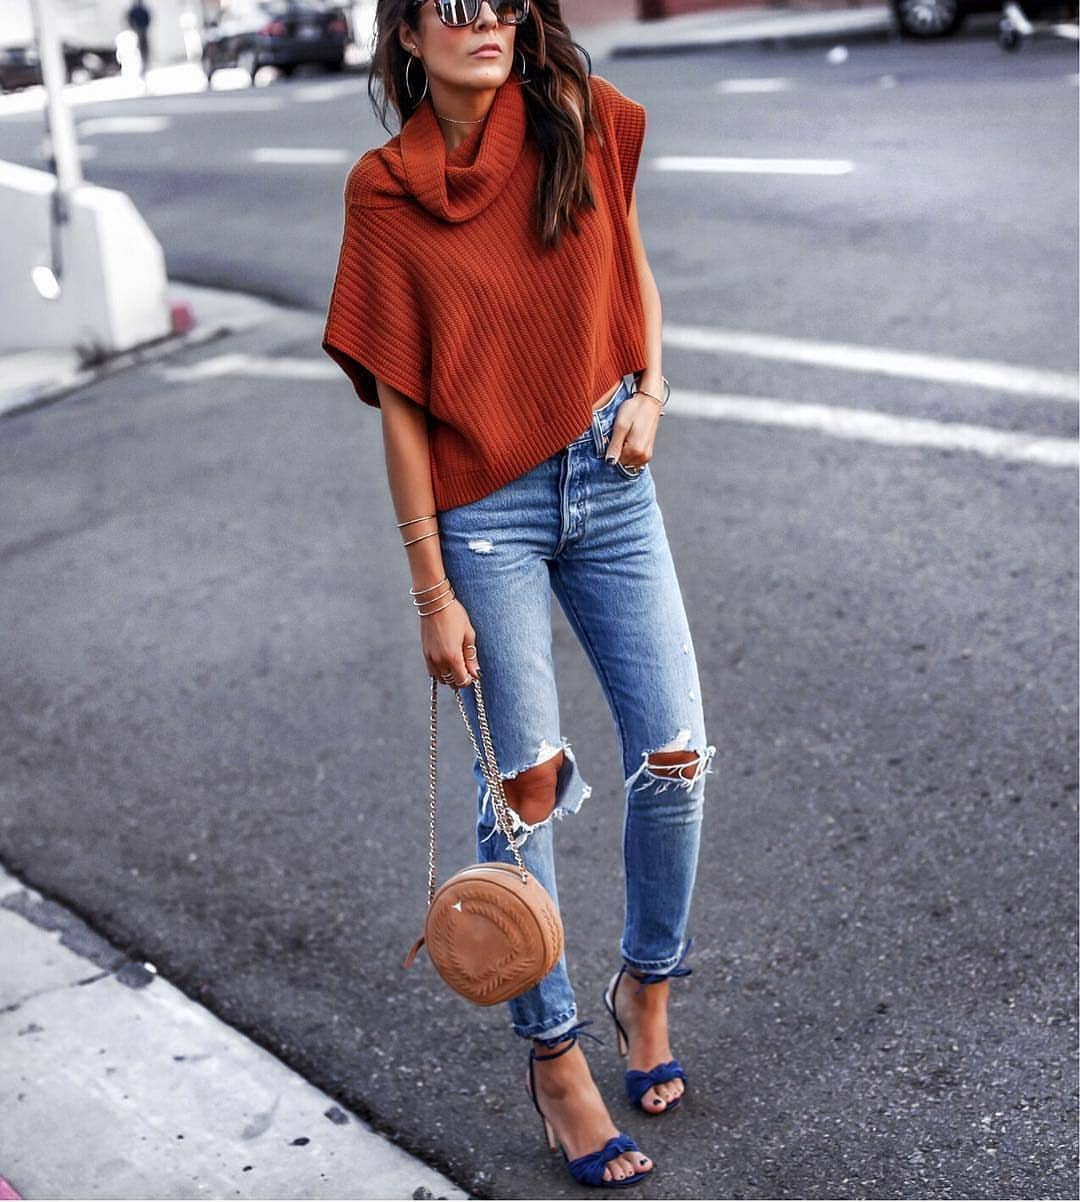 Slouchy Sleeveless Sweater With Knee-Ripped Jeans For Summer Street Walks 2019